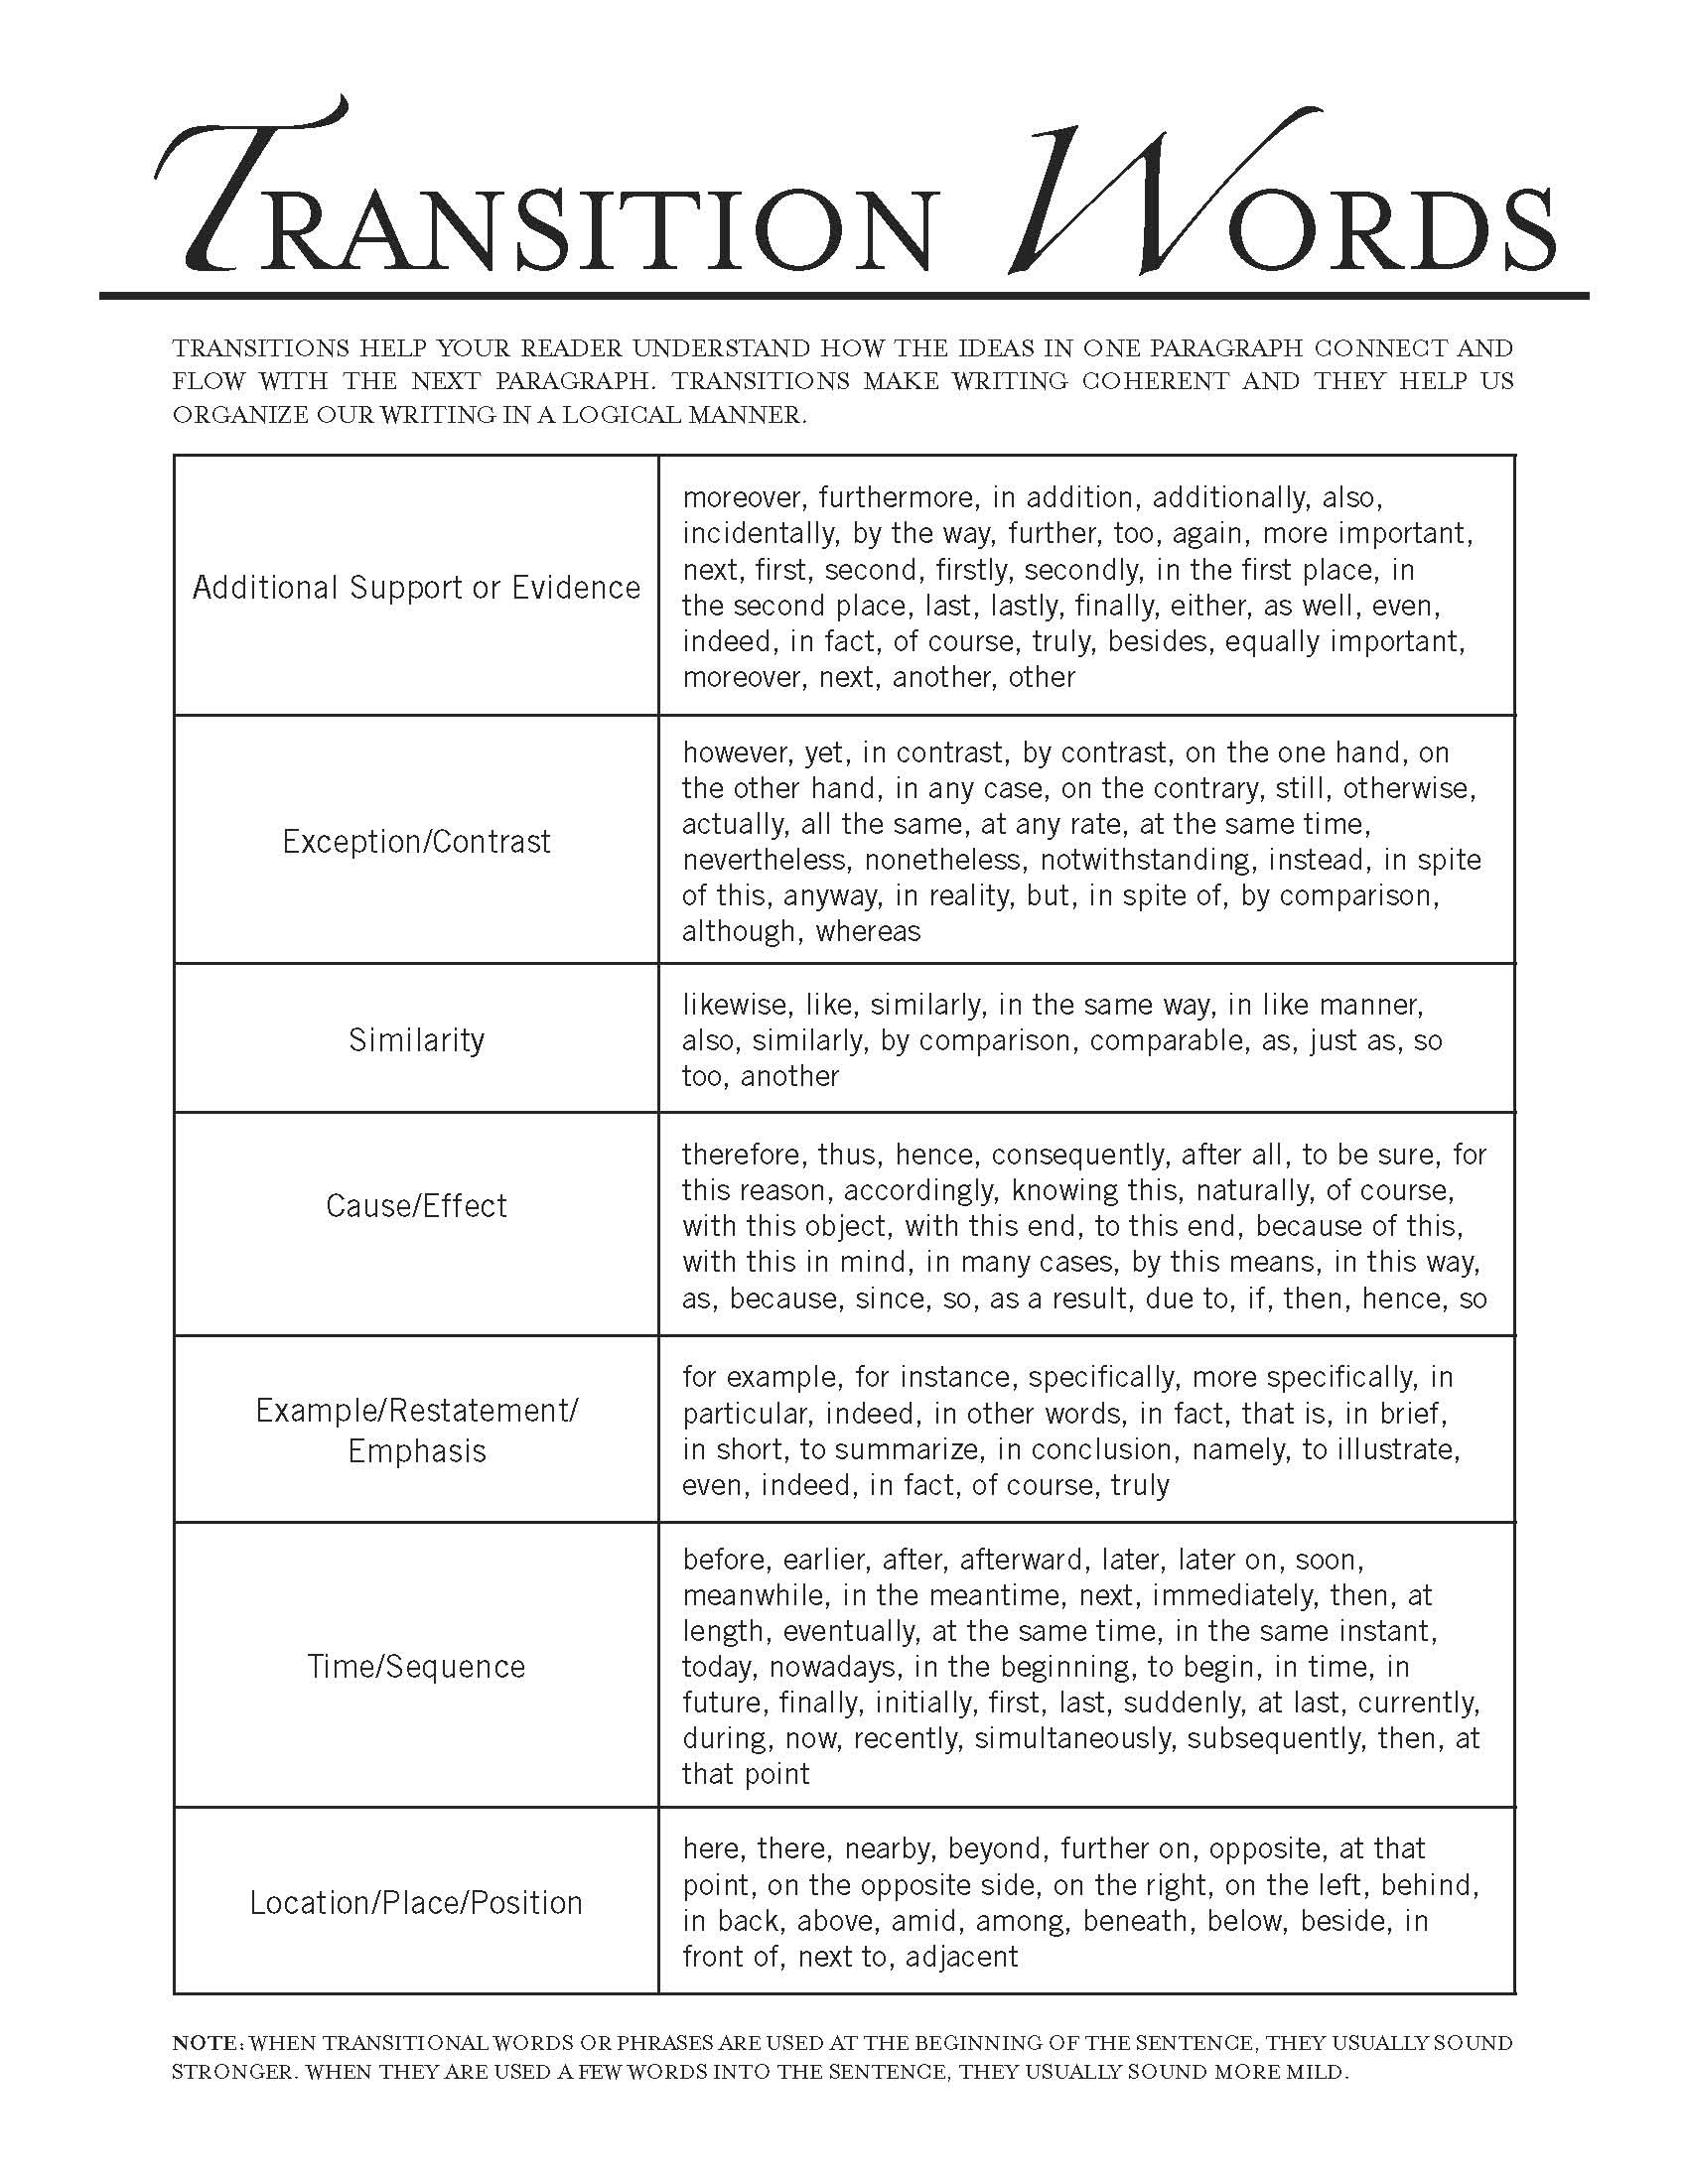 word essay word essay example awardwinningessays g word  transition phrases for essays transition words amp phrases examples of transition words used in essays essaygood